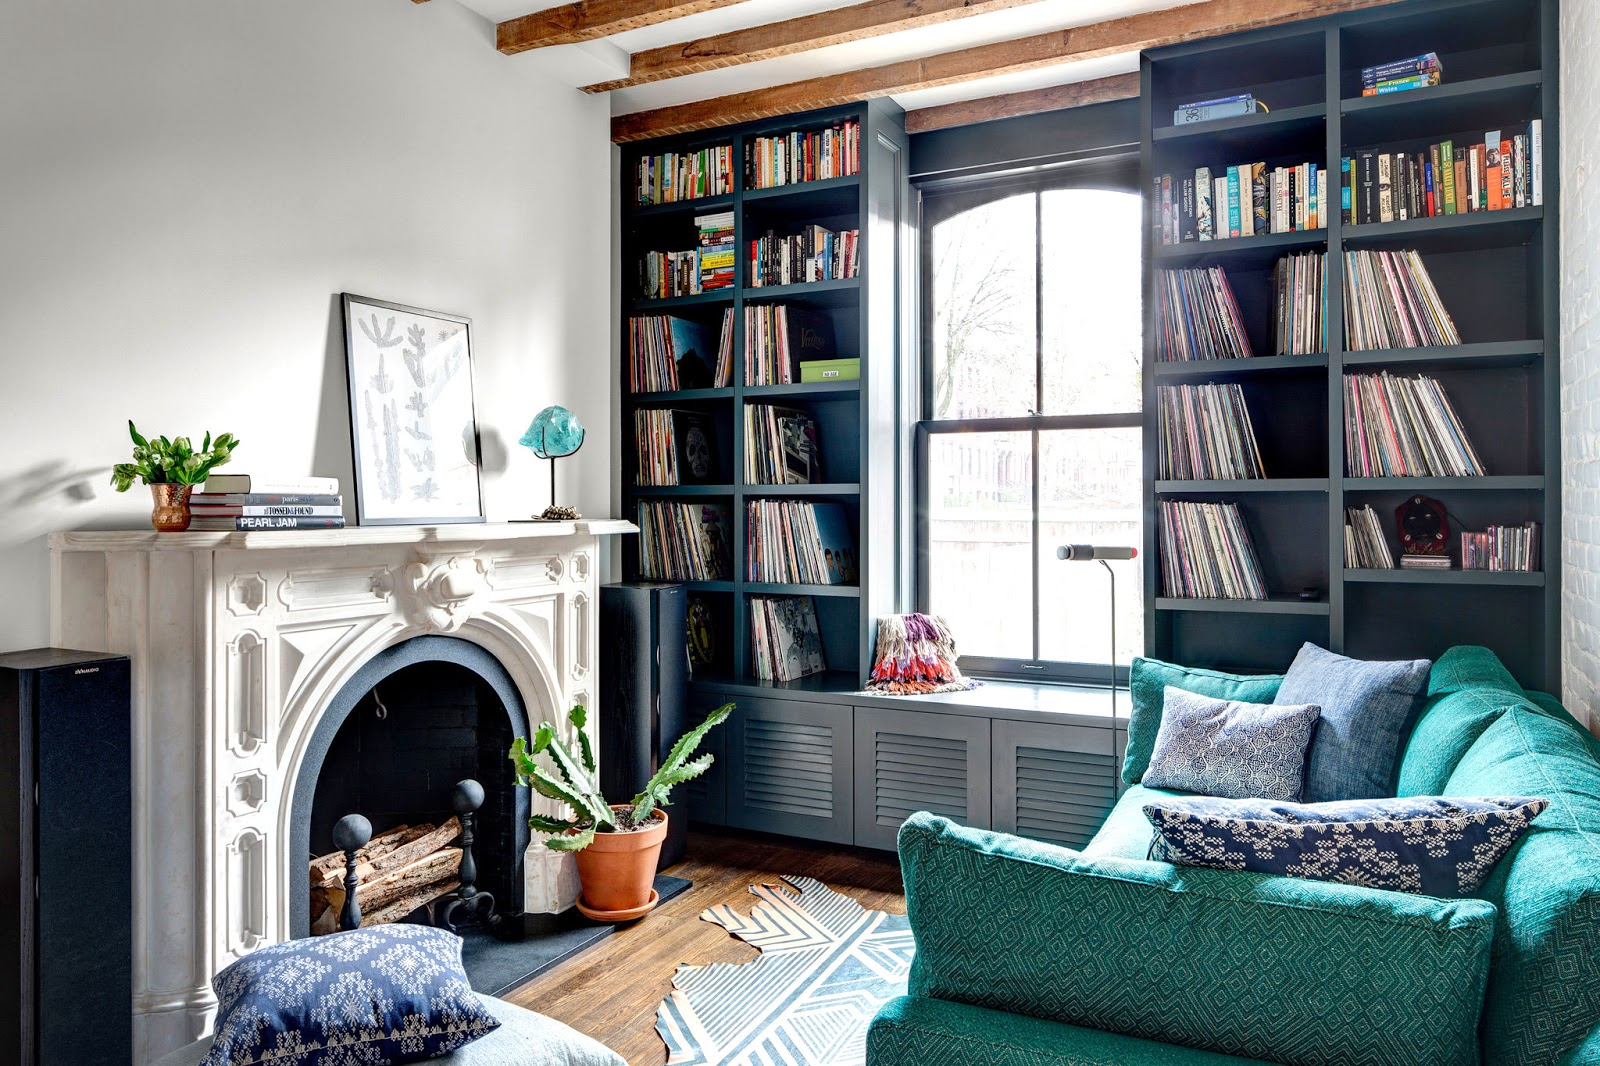 cozy furniture brooklyn. Living Room In A Brooklyn Townhouse With Teal Sofa Cozy Furniture